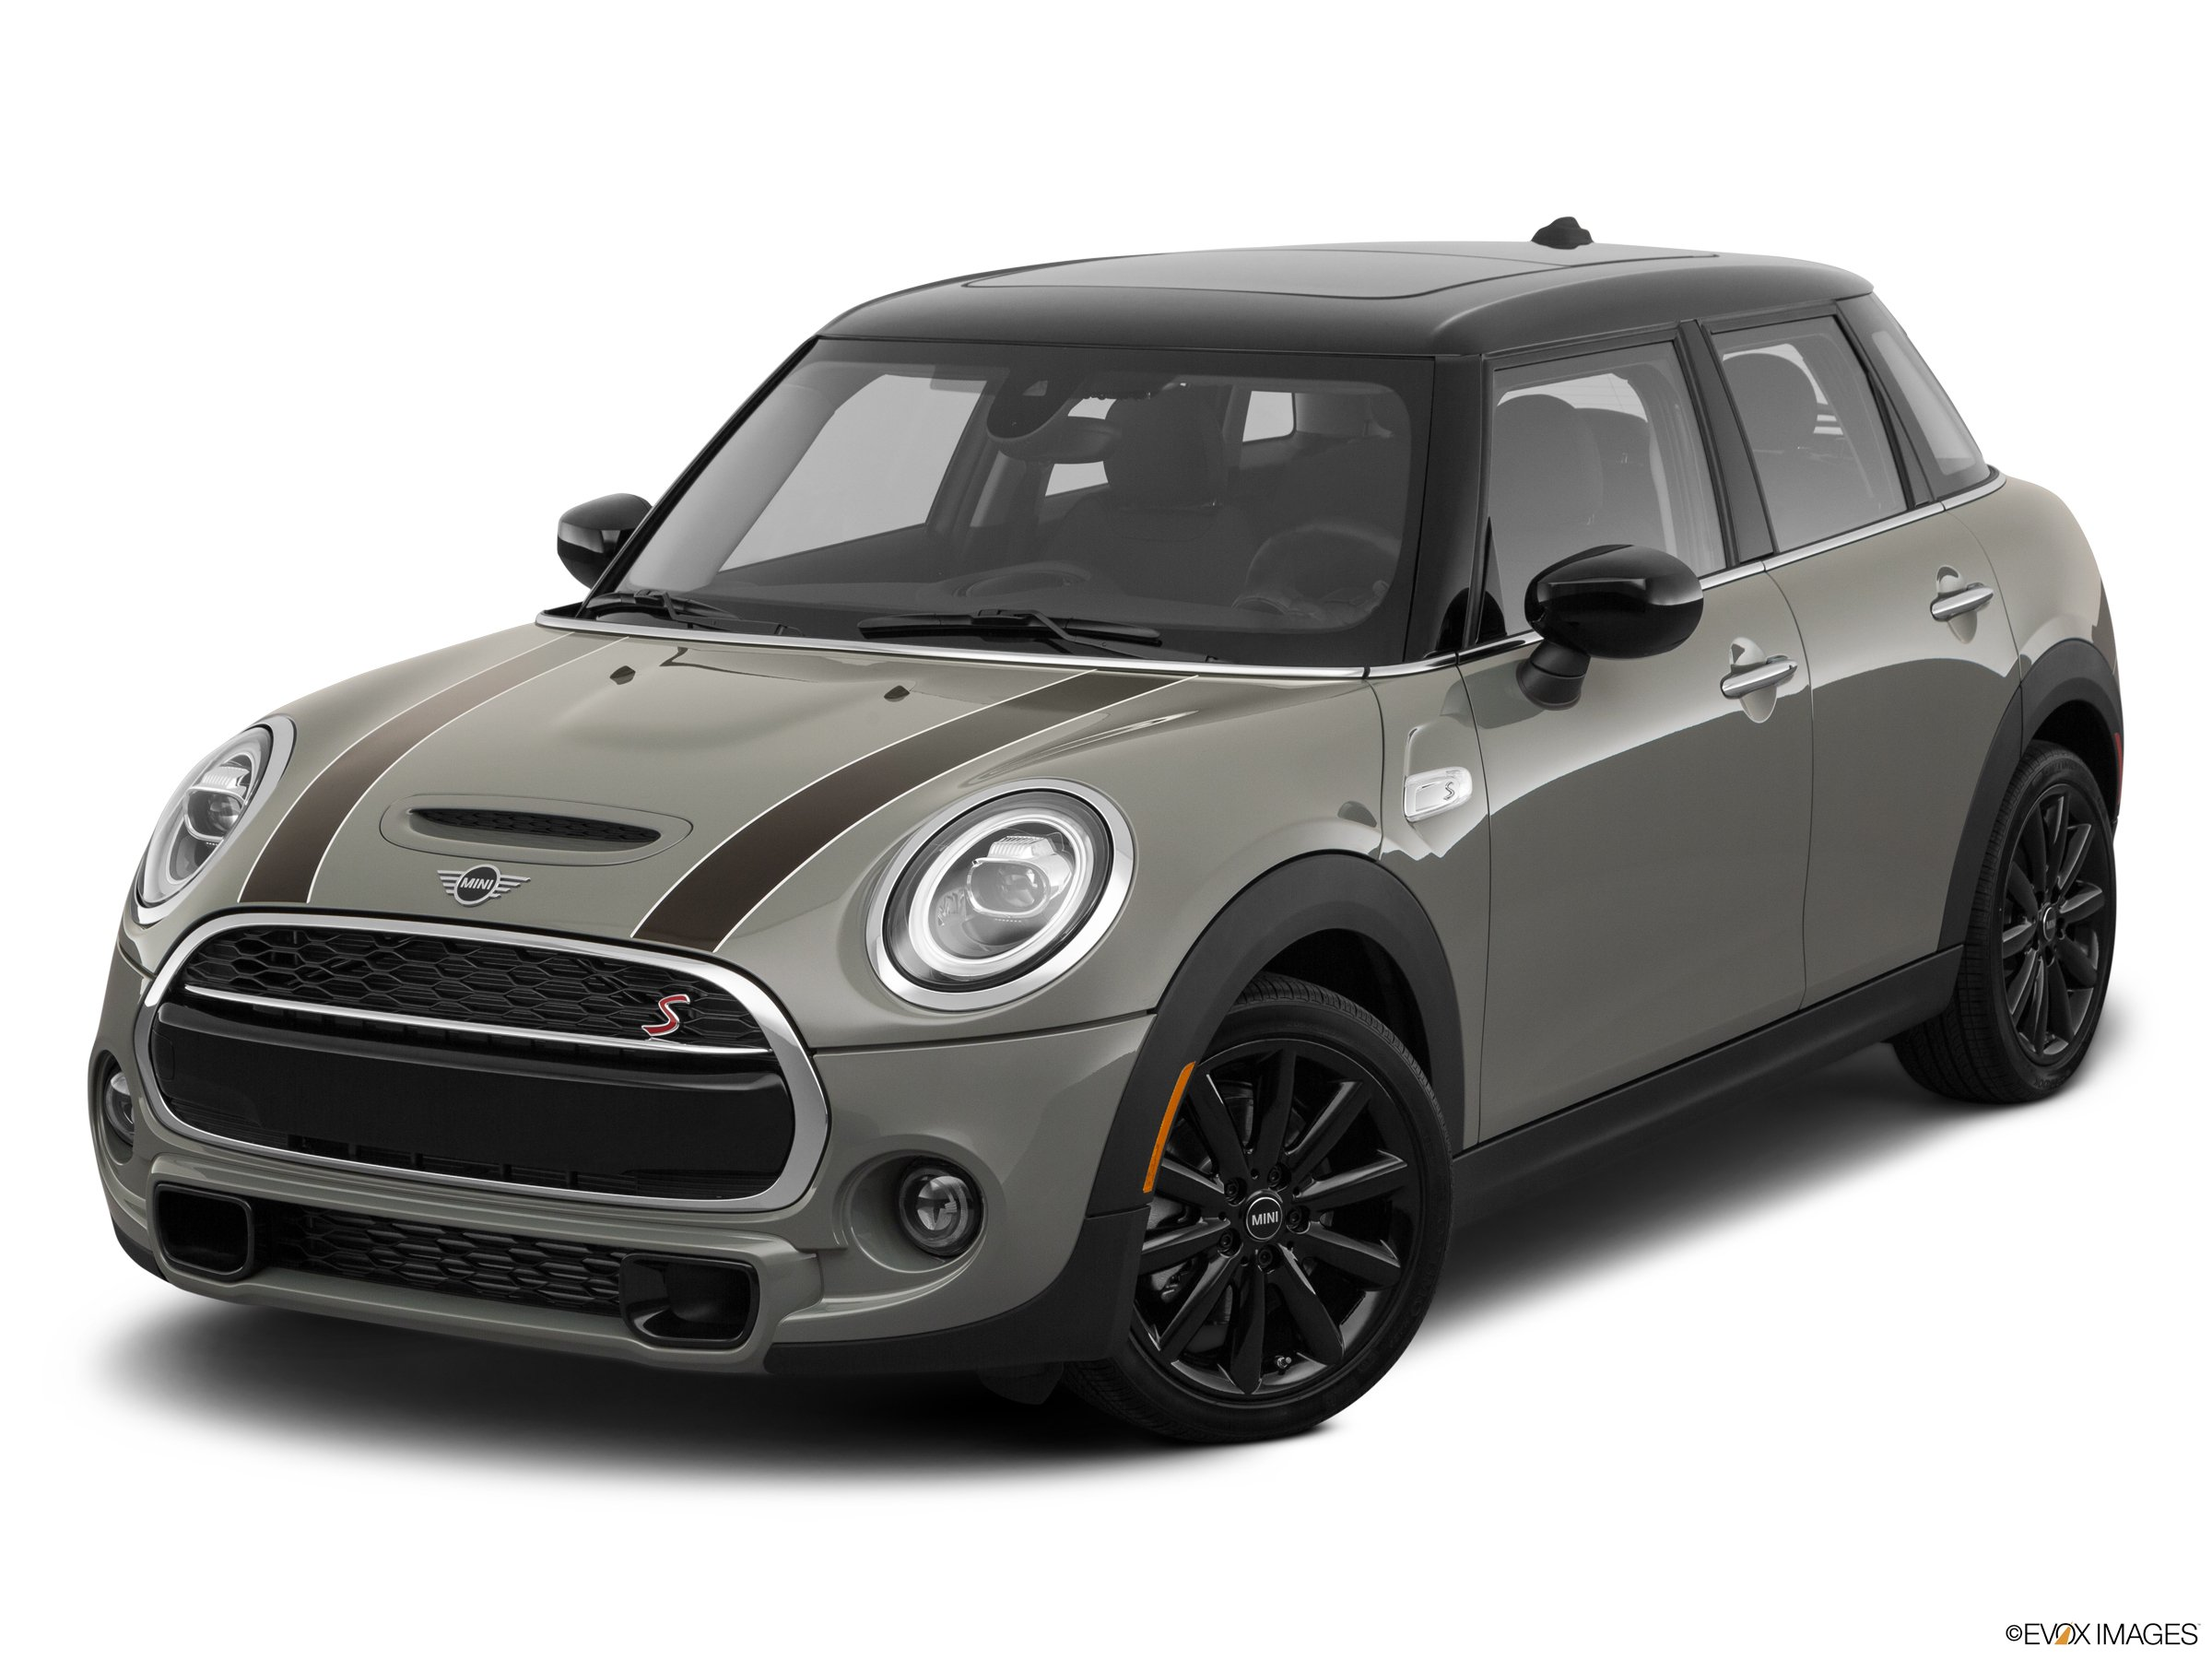 2021 Mini Hardtop 4 Door Cooper S FWD hatchback